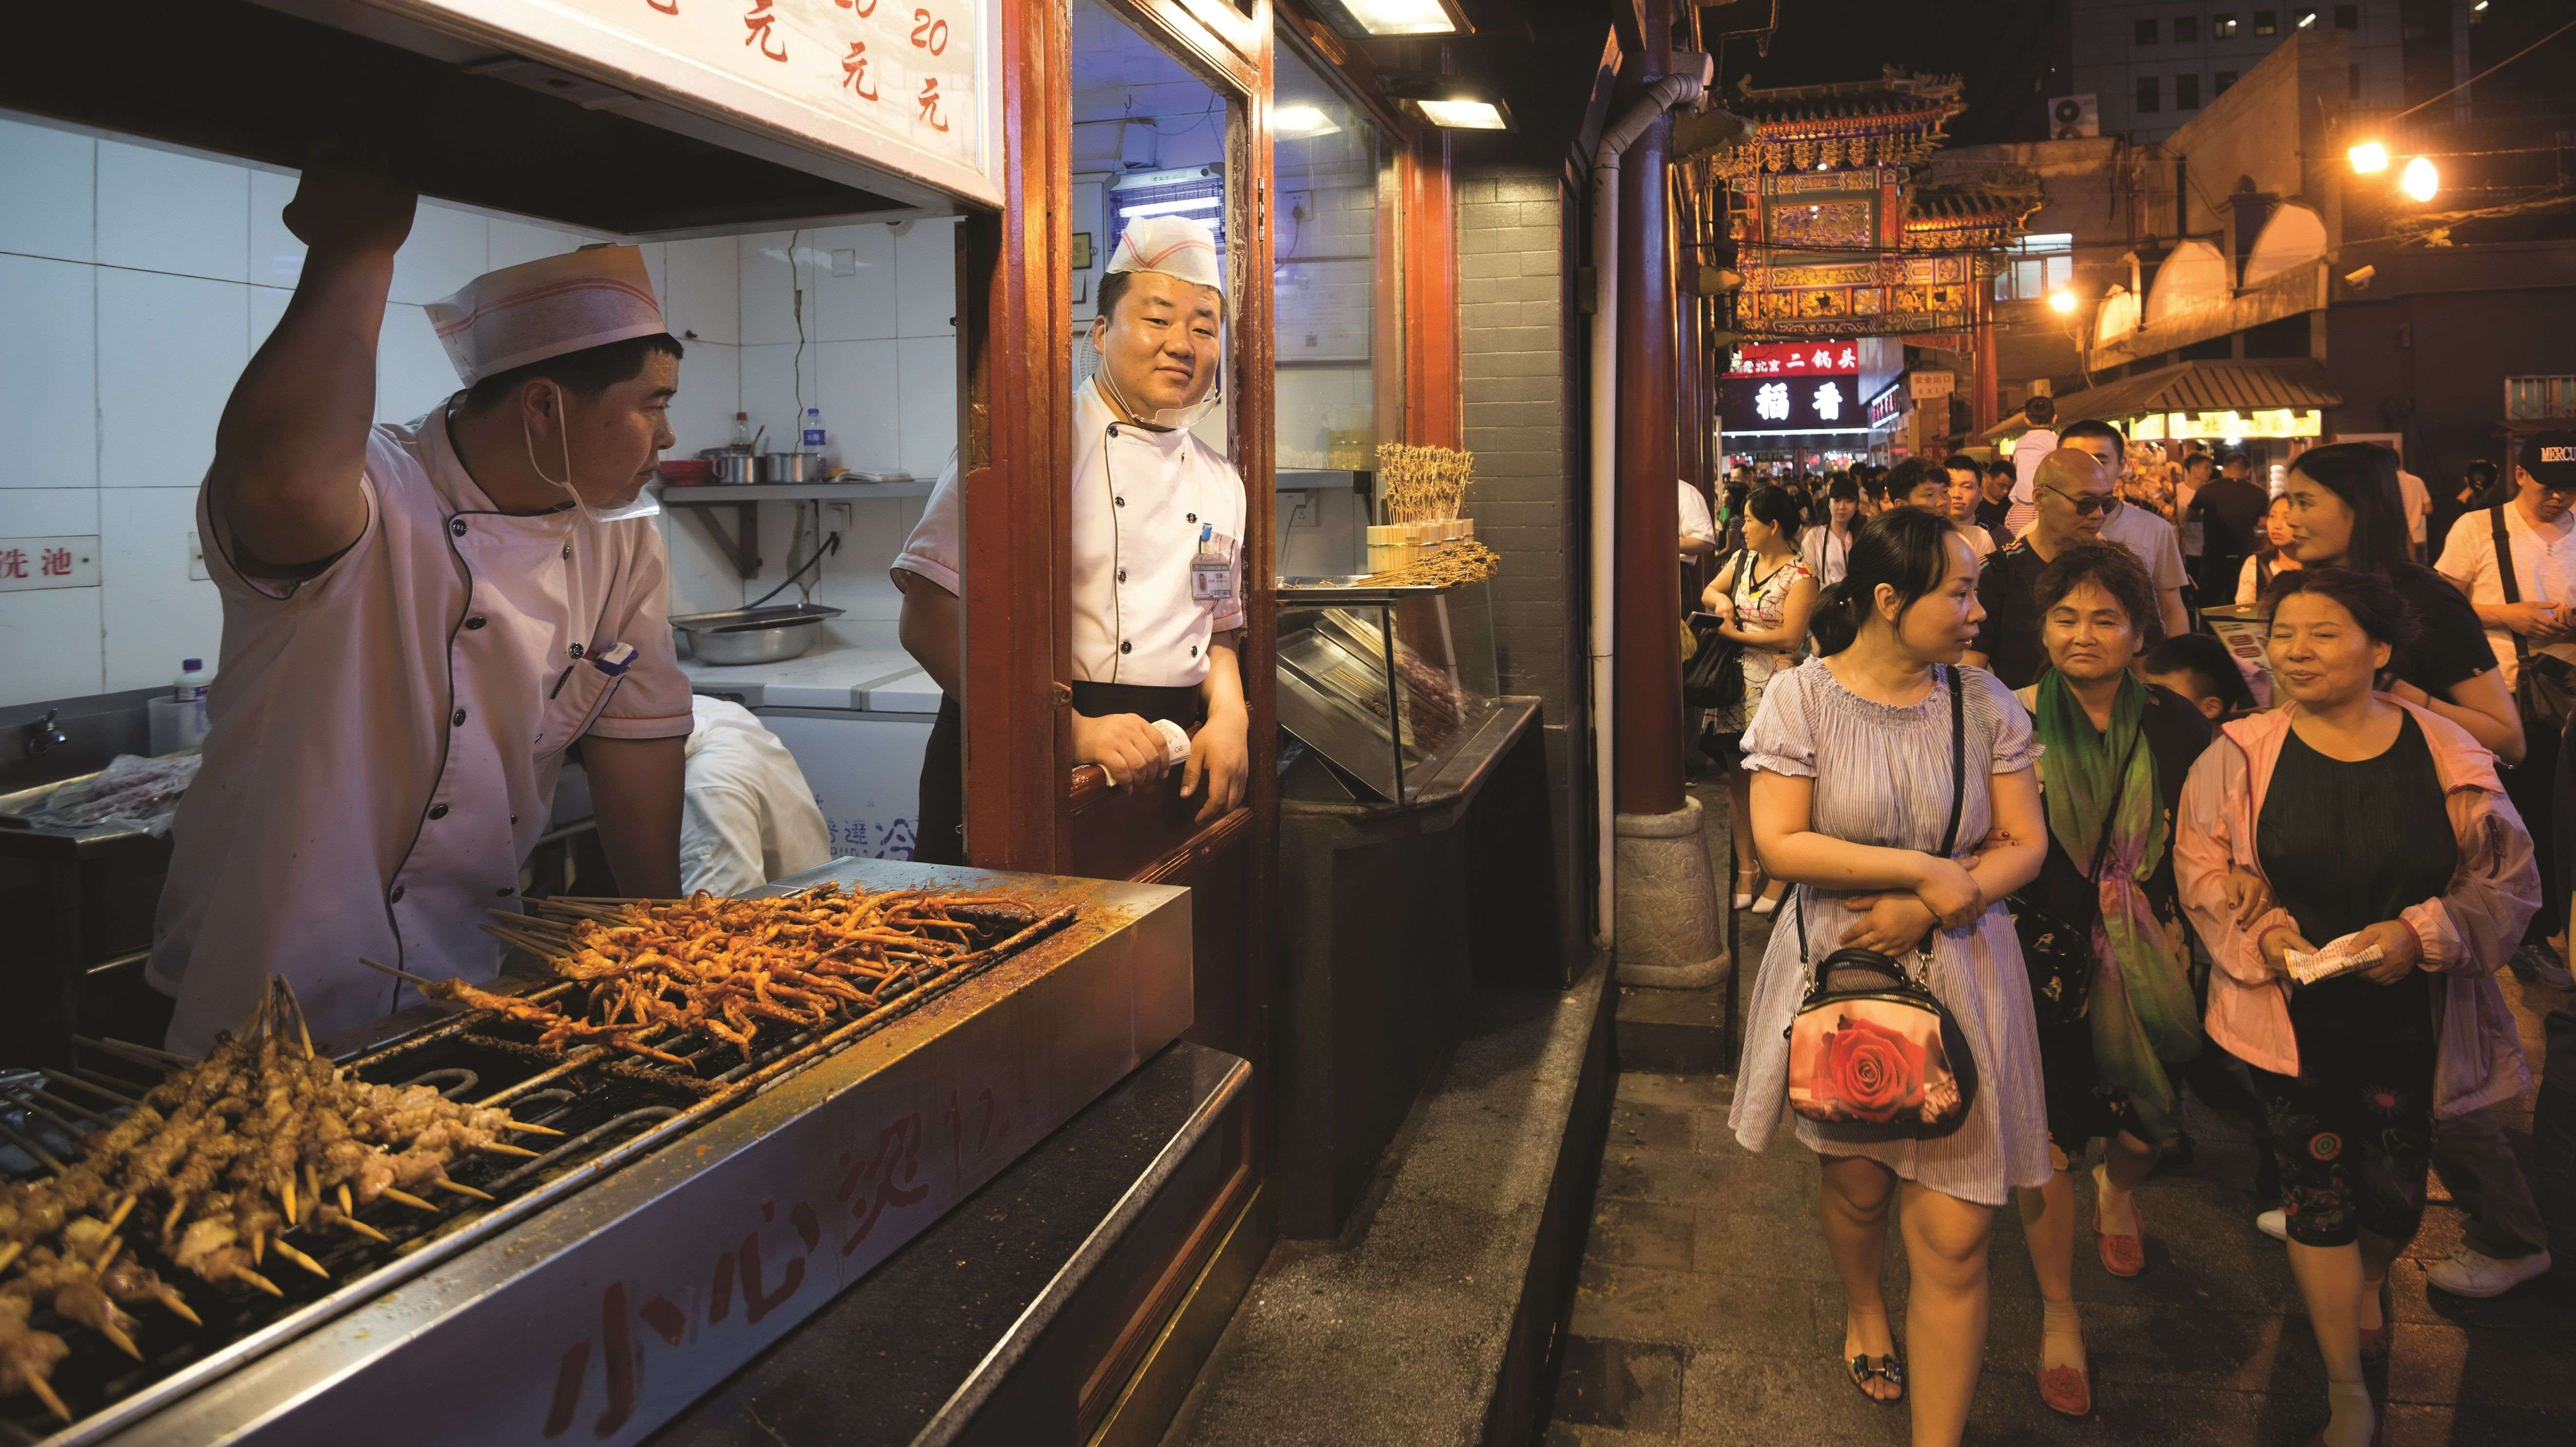 Beijing's hutongs are known for serving up traditional fare and a lively community atmosphere